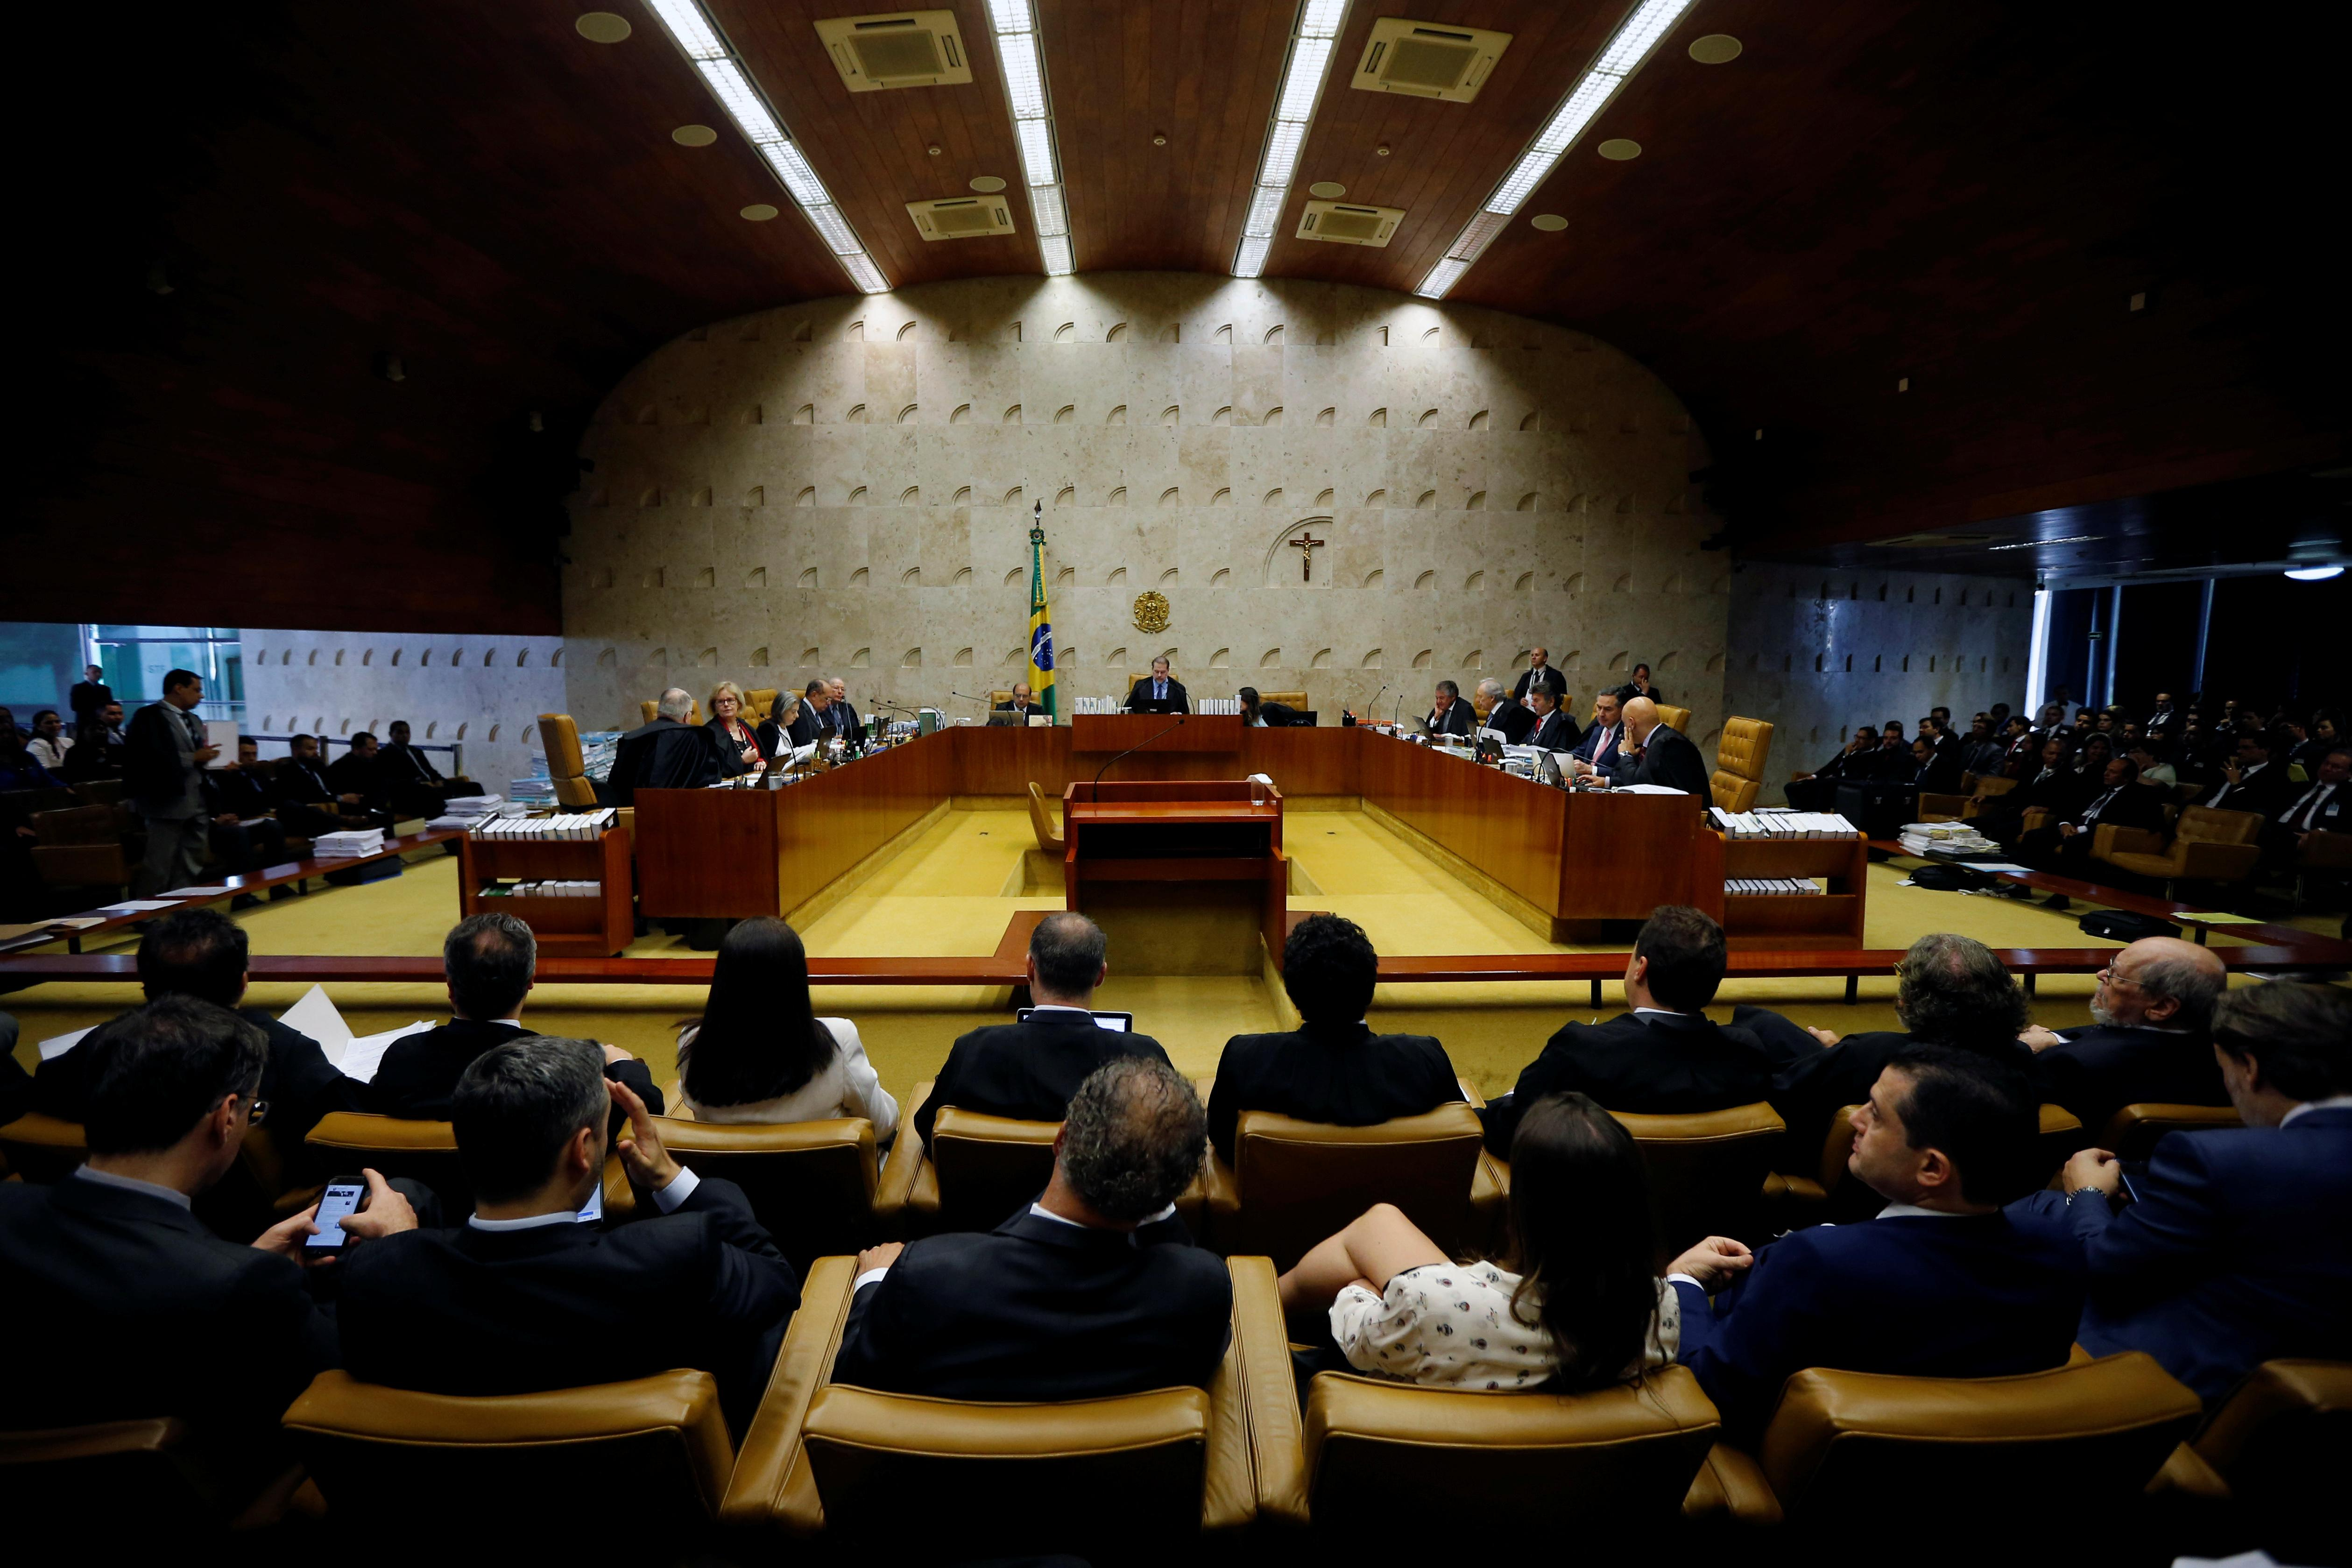 Brazil Supreme Court ruling could free corruption convicts,...